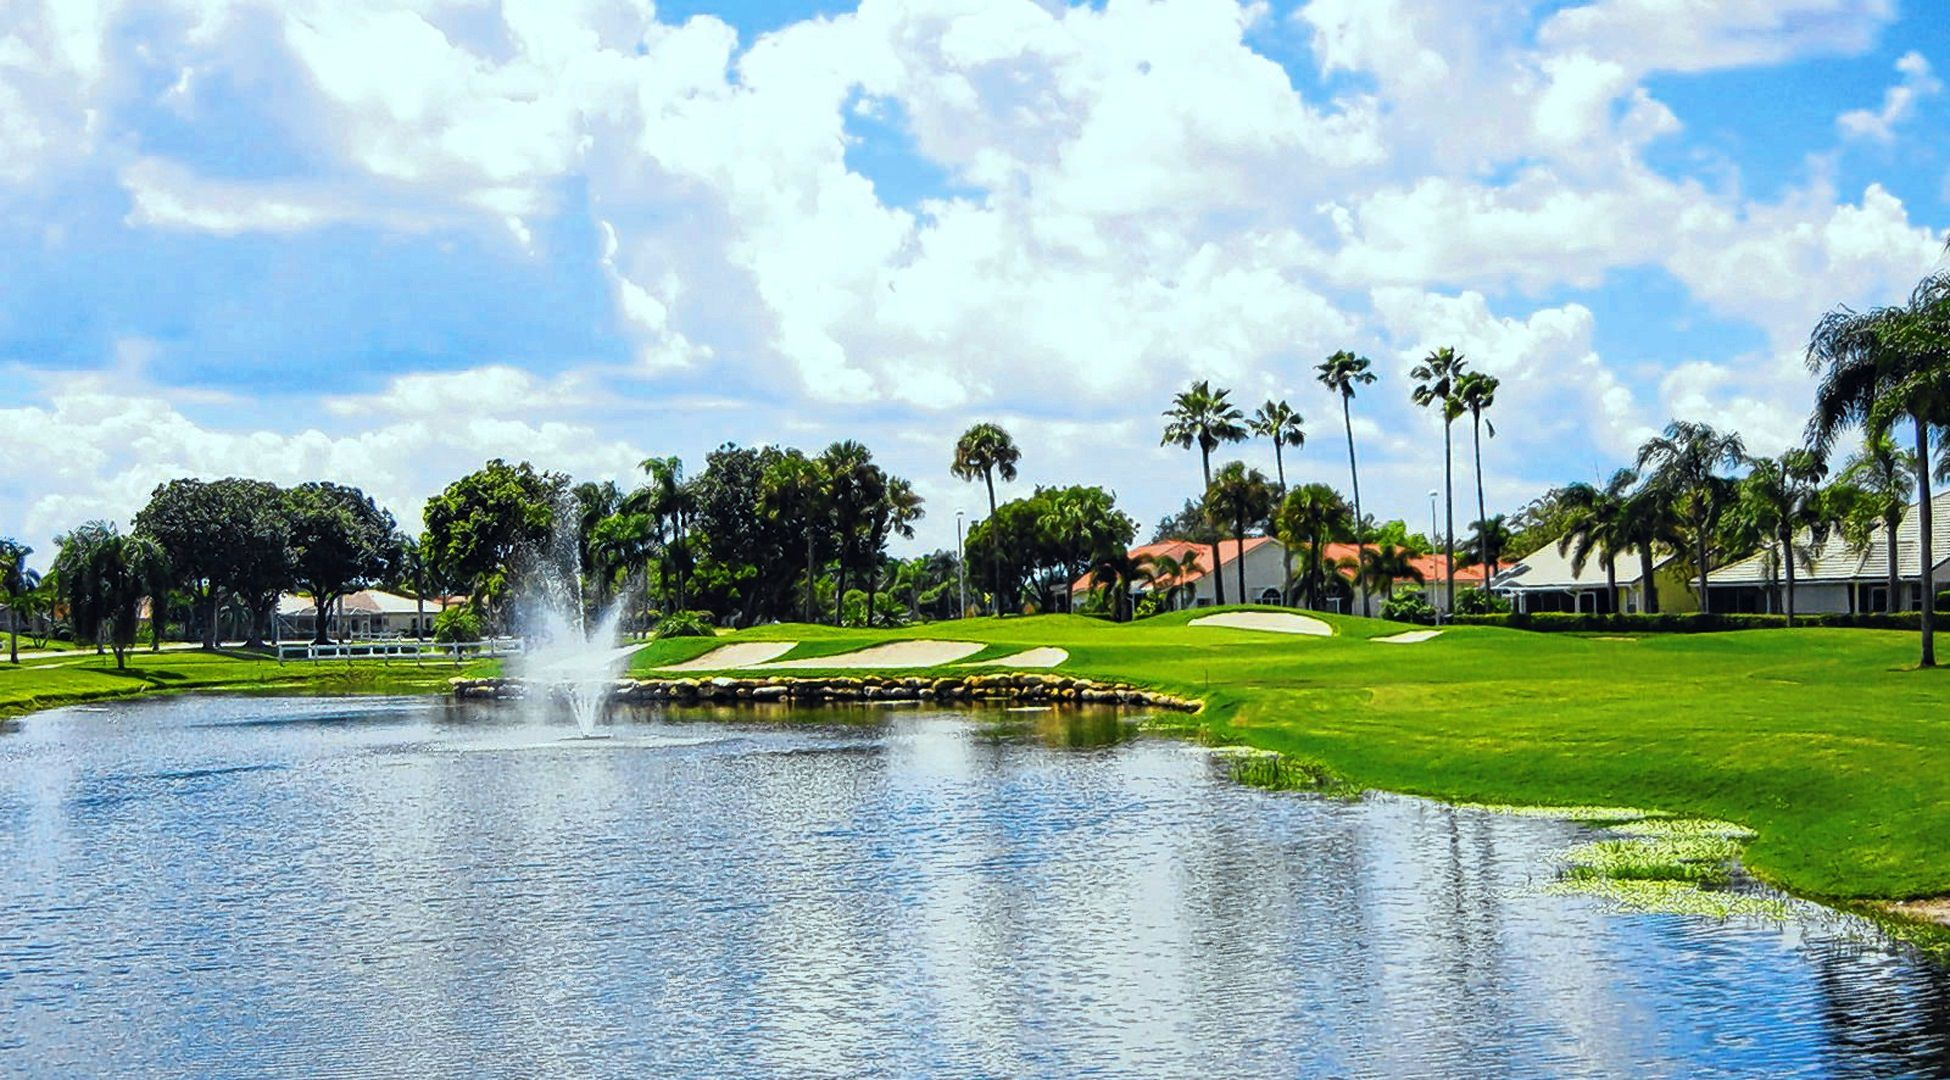 Atlantic_National_golfclub_palm_beach_fl2 - palm beach